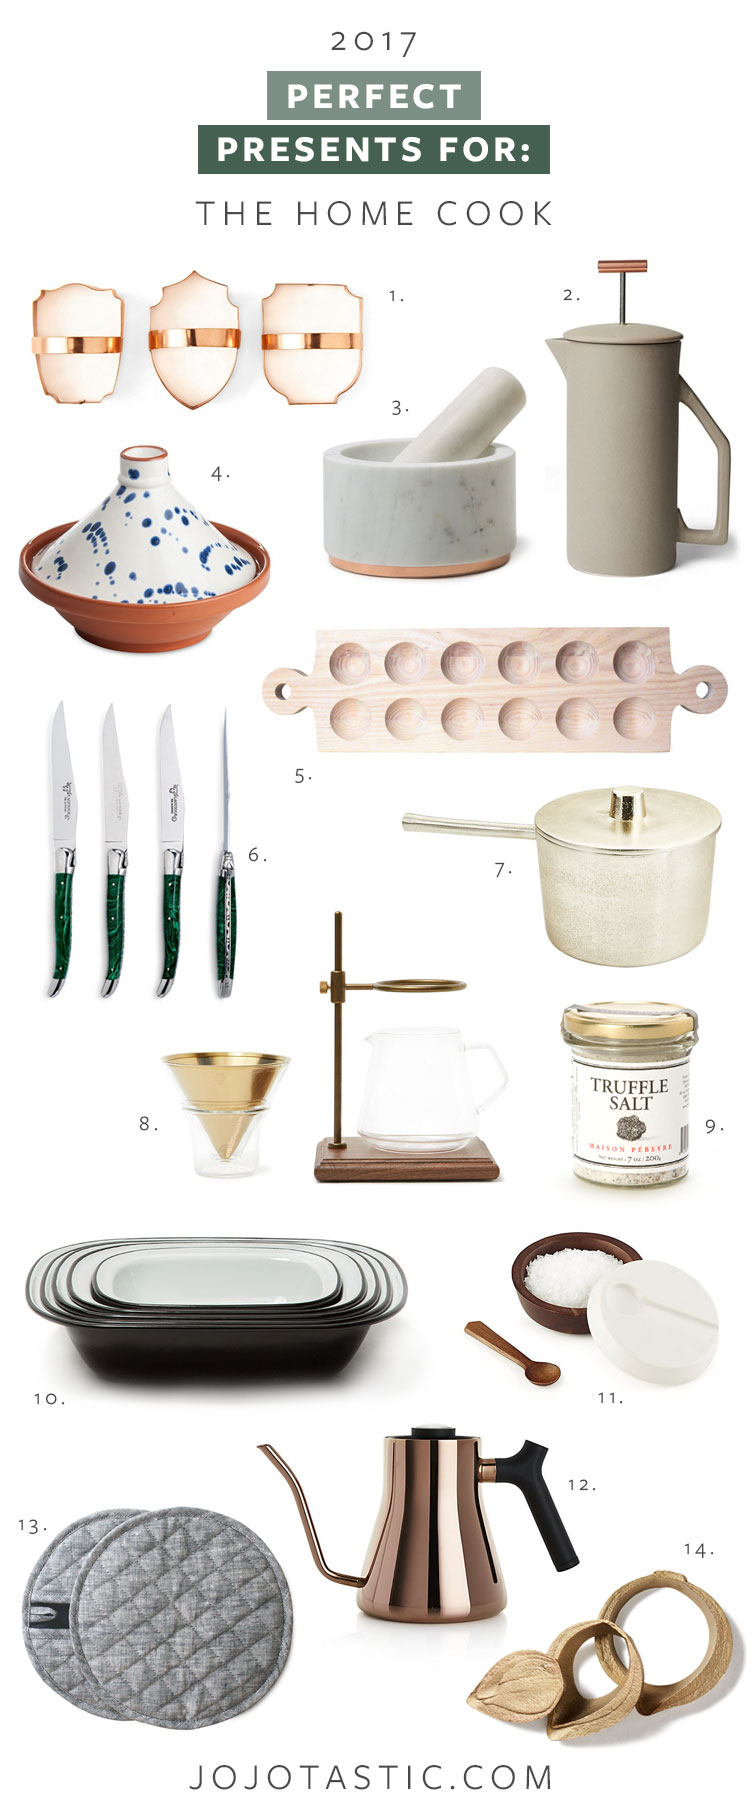 perfect presents for the home cook or chef! lots of gorgeous, unexpected kitchen, dining, and cooking essentials. Get the full gift guide and shopping list on jojotastic.com #giftguide #christmasgifts #giftsforher #giftsforhim